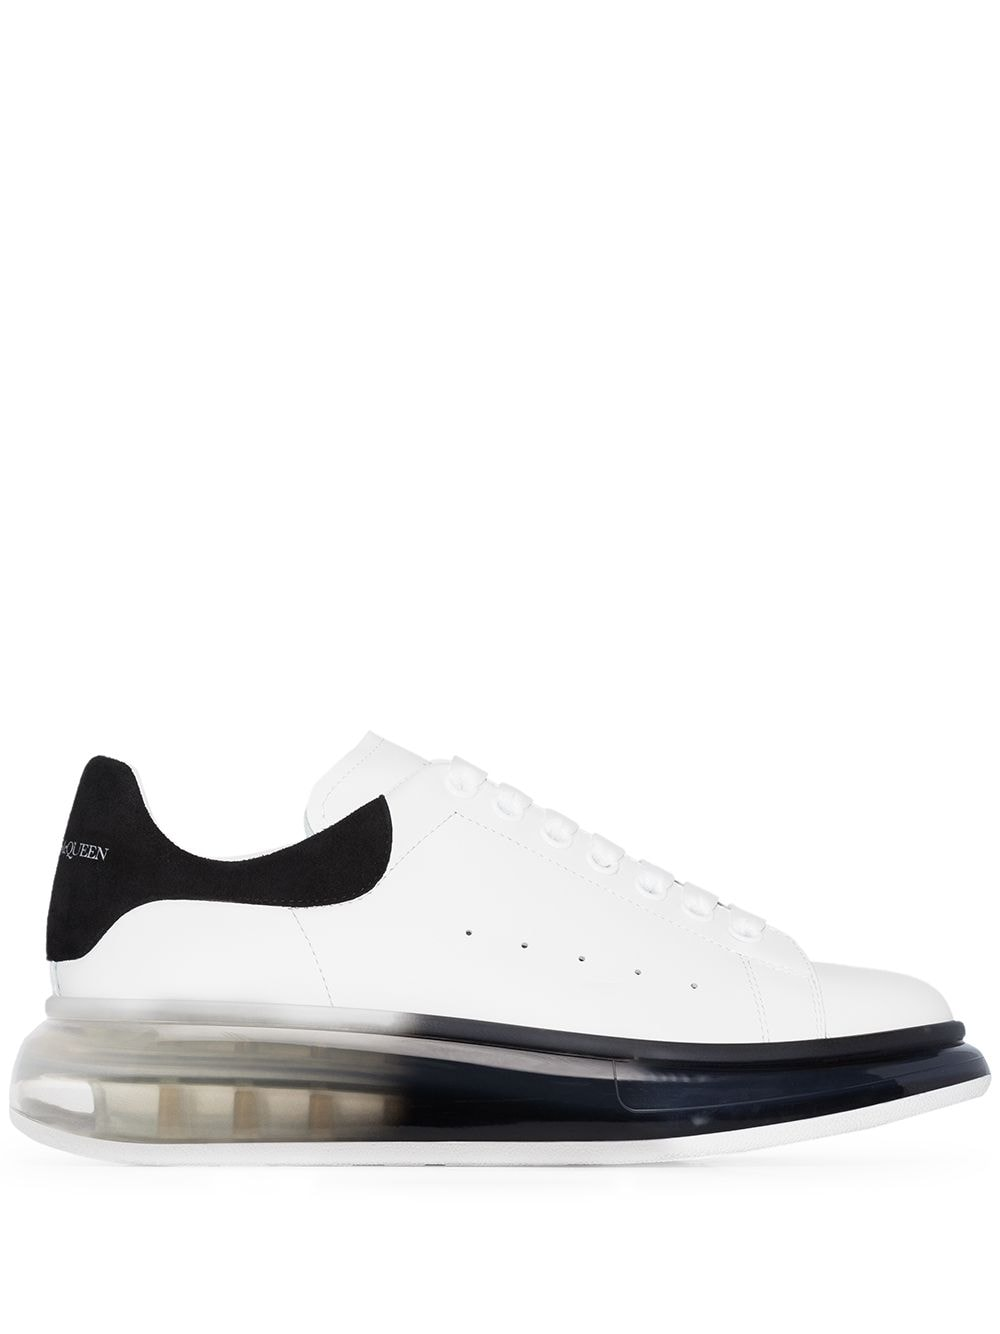 Alexander McQueen chunky Airbubble sneakers - White von Alexander McQueen